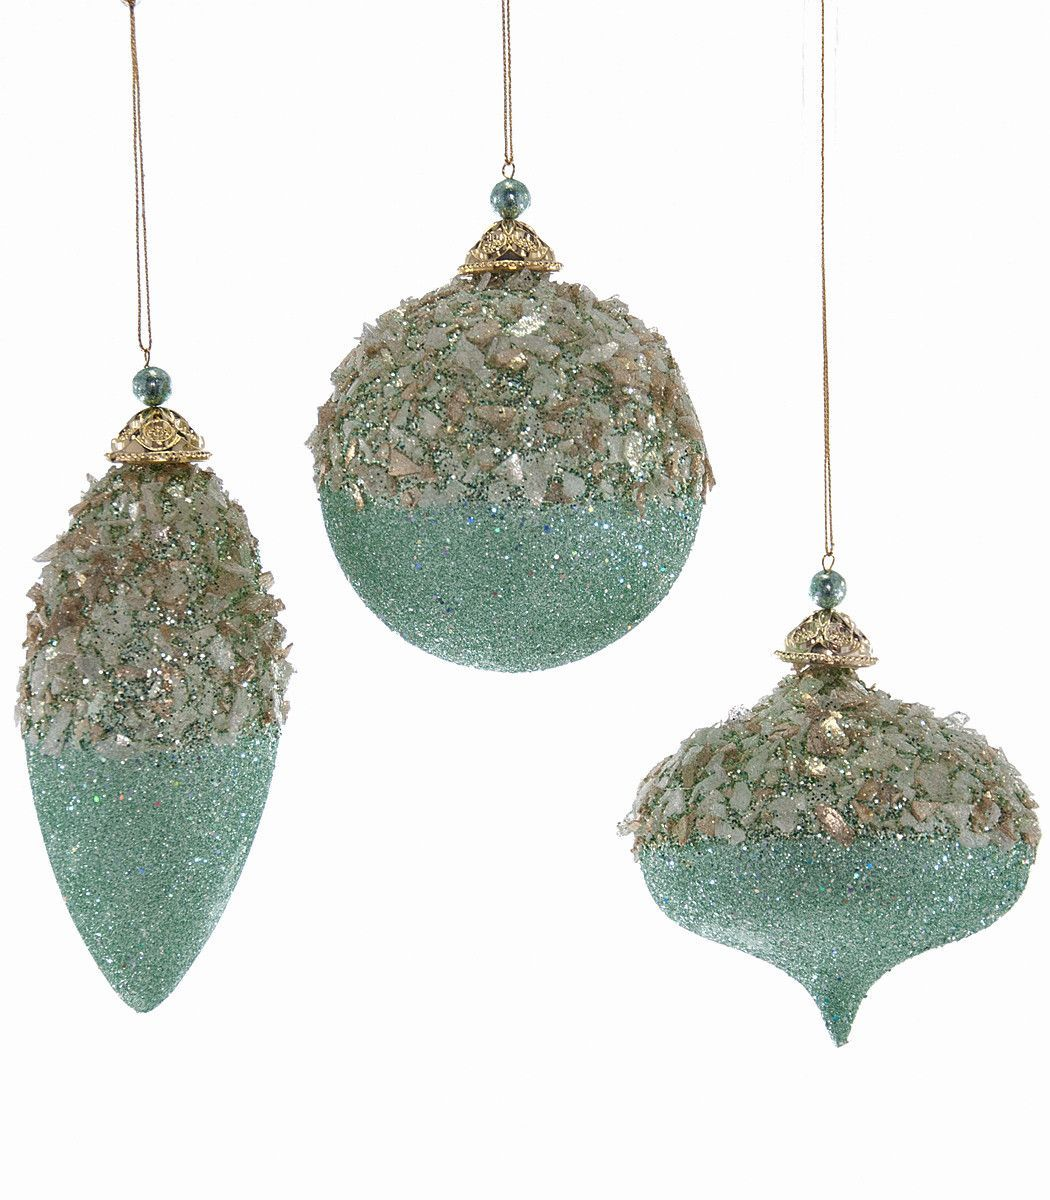 Fairy christmas ornaments - Katherine S Collection Celestial Fairy Christmas Collection Twelve Assorted 100mm Glittered Turquoise Ornaments Free Ship